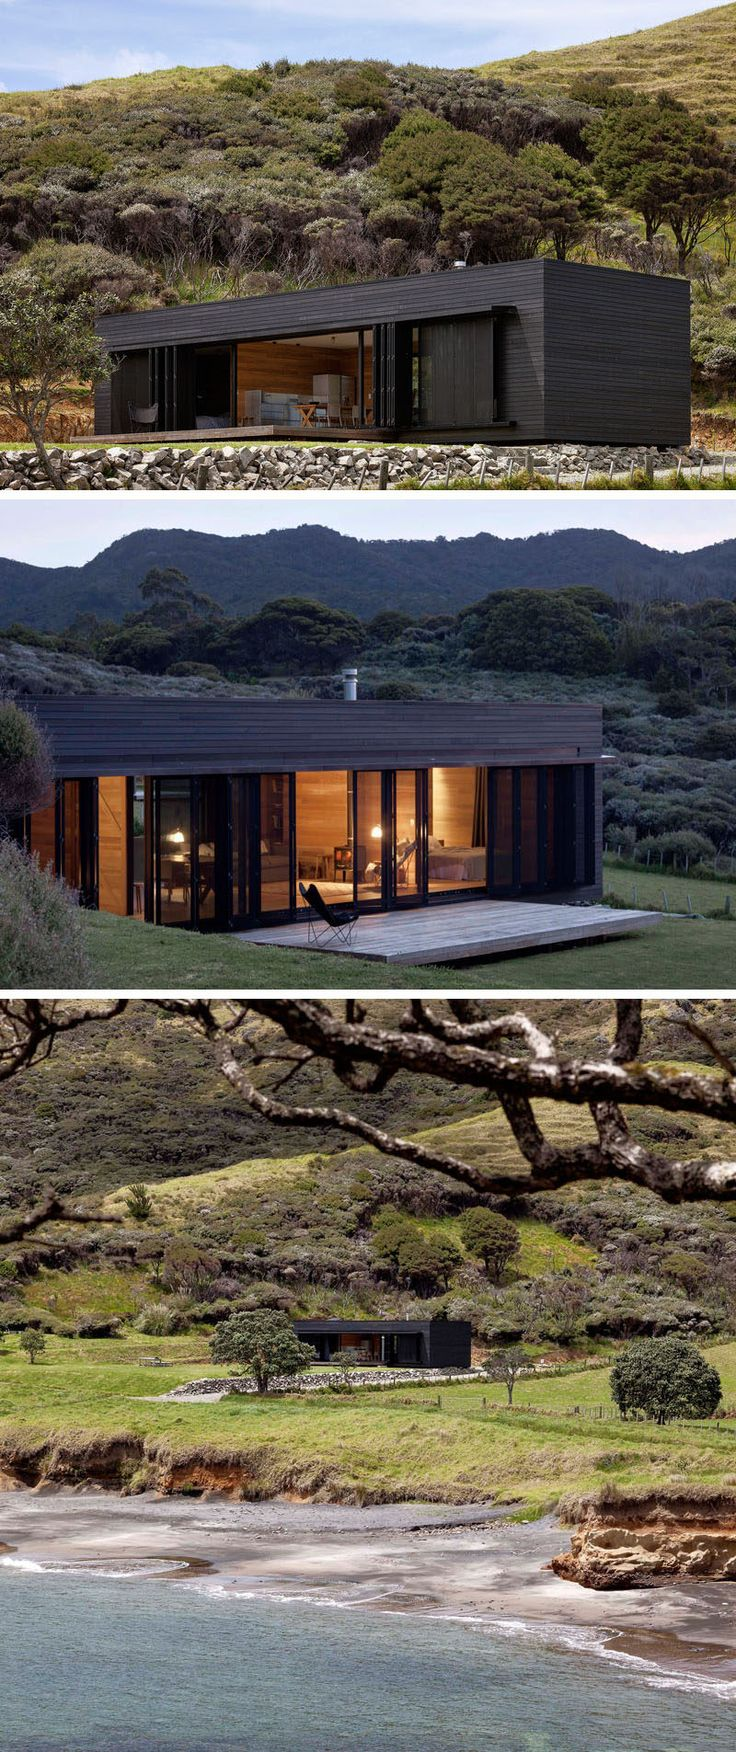 13 Totally Secluded Homes To Escape From The World // The Storm Cottage by Fearon Hay Architects has been designed to be completely off the grid. Located in a remote location on Great Barrier Island in New Zealand, this secluded place would be great for a rejuvenating retreat.